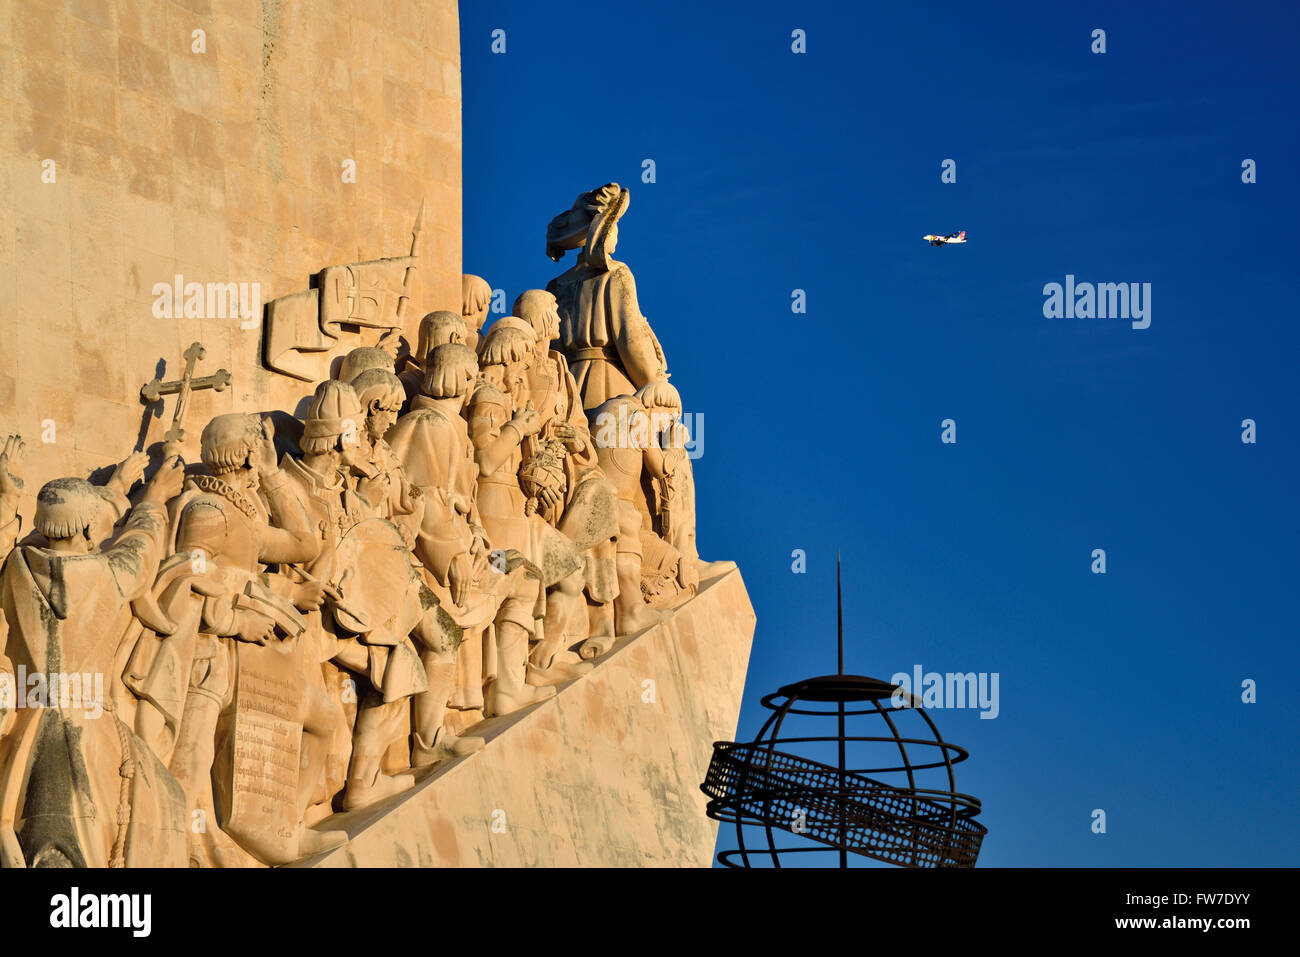 Portugal, Lisbon: Lateral view of Discoveries Monument in Belém - Stock Image